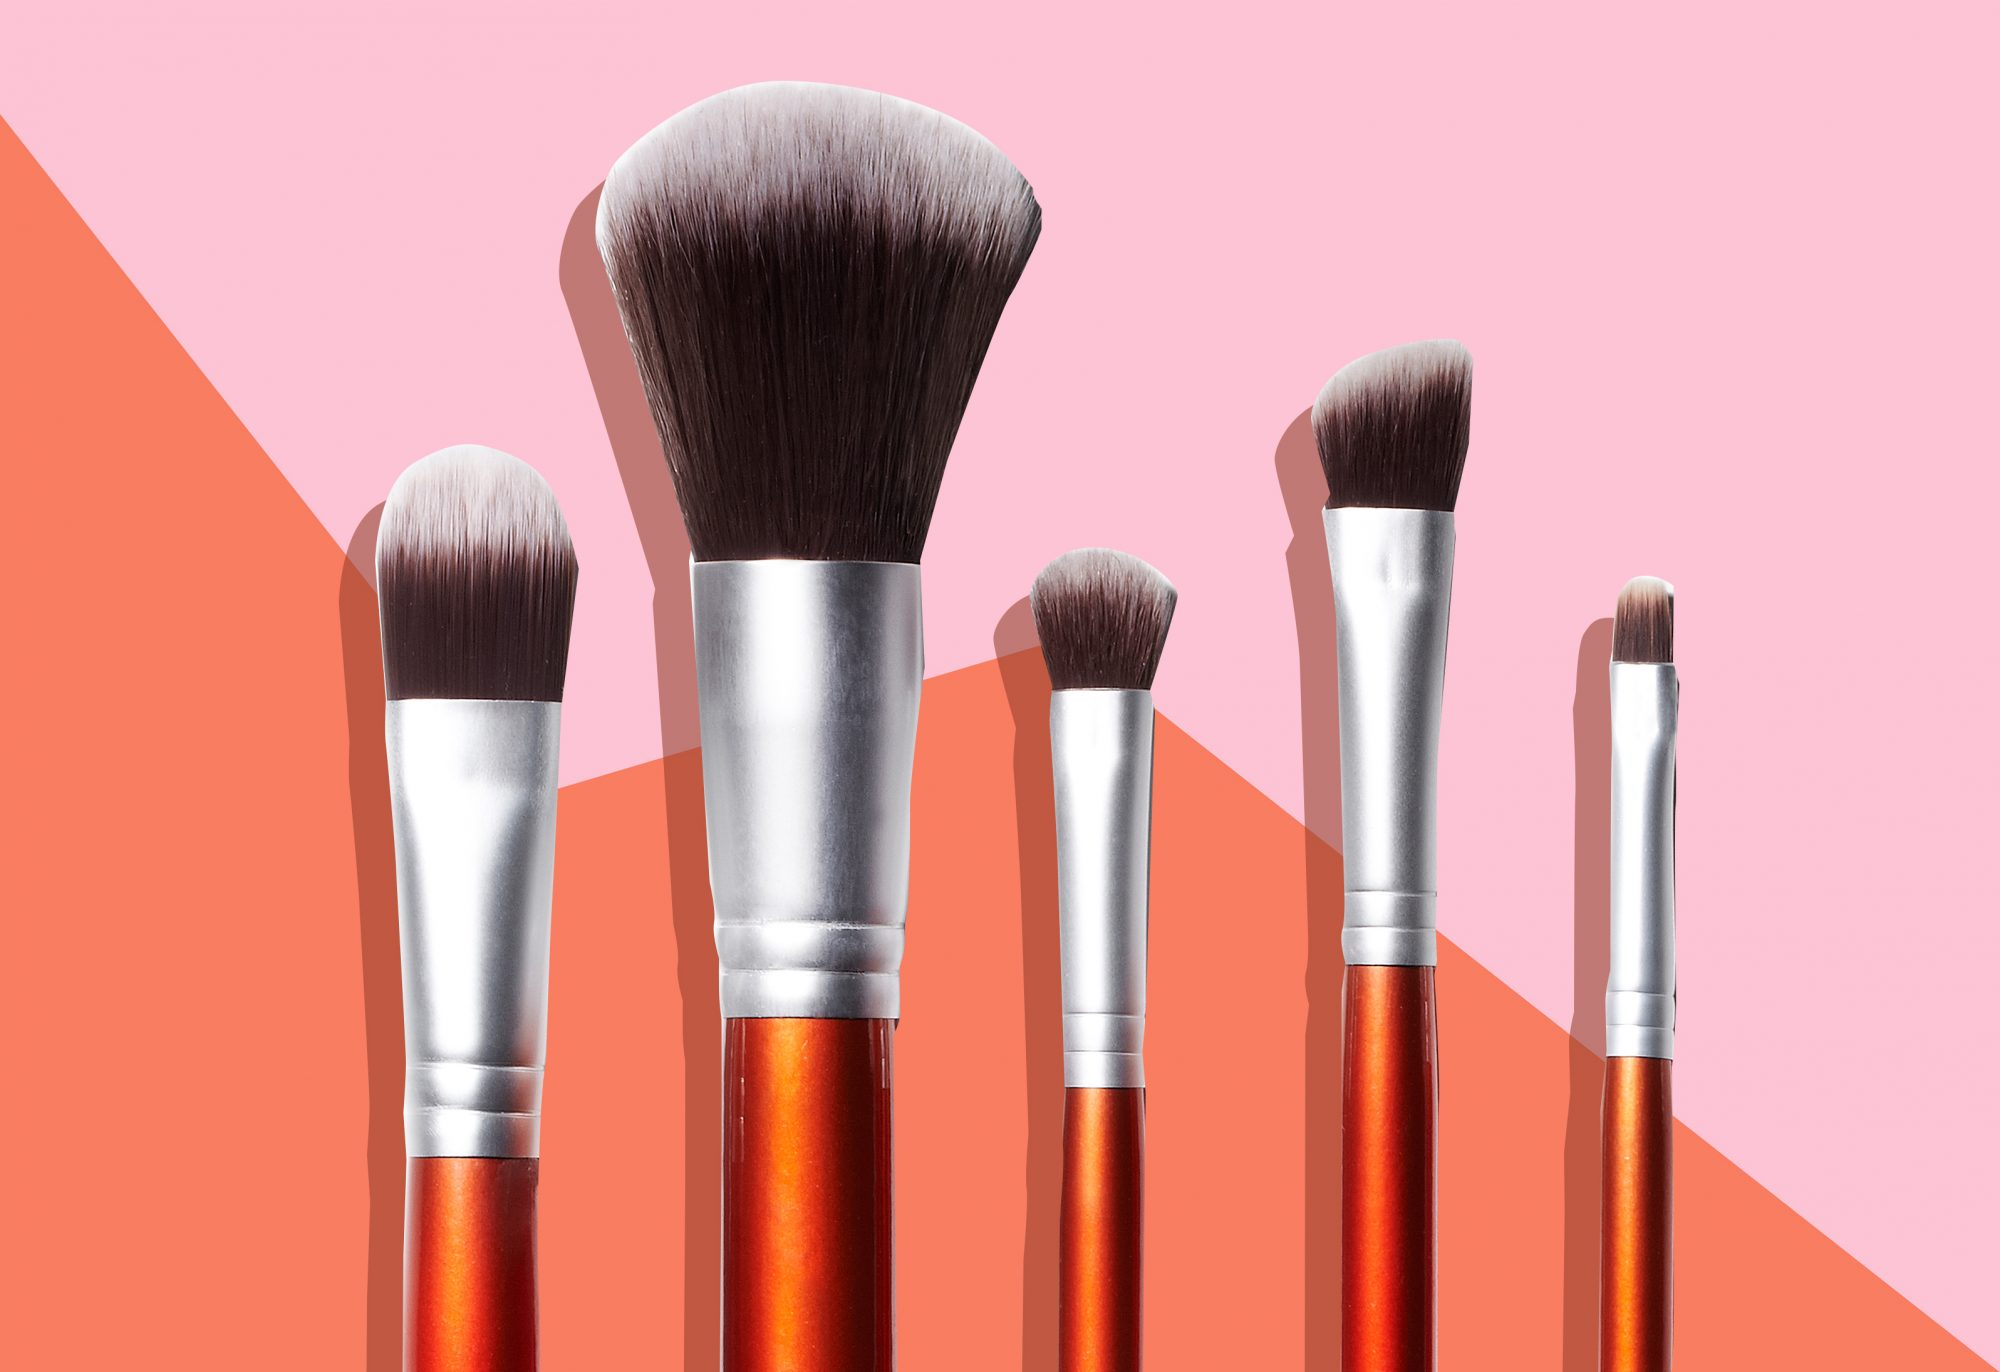 Learn how to clean makeup brushes in minutes with this affordable makeup brush cleaner.